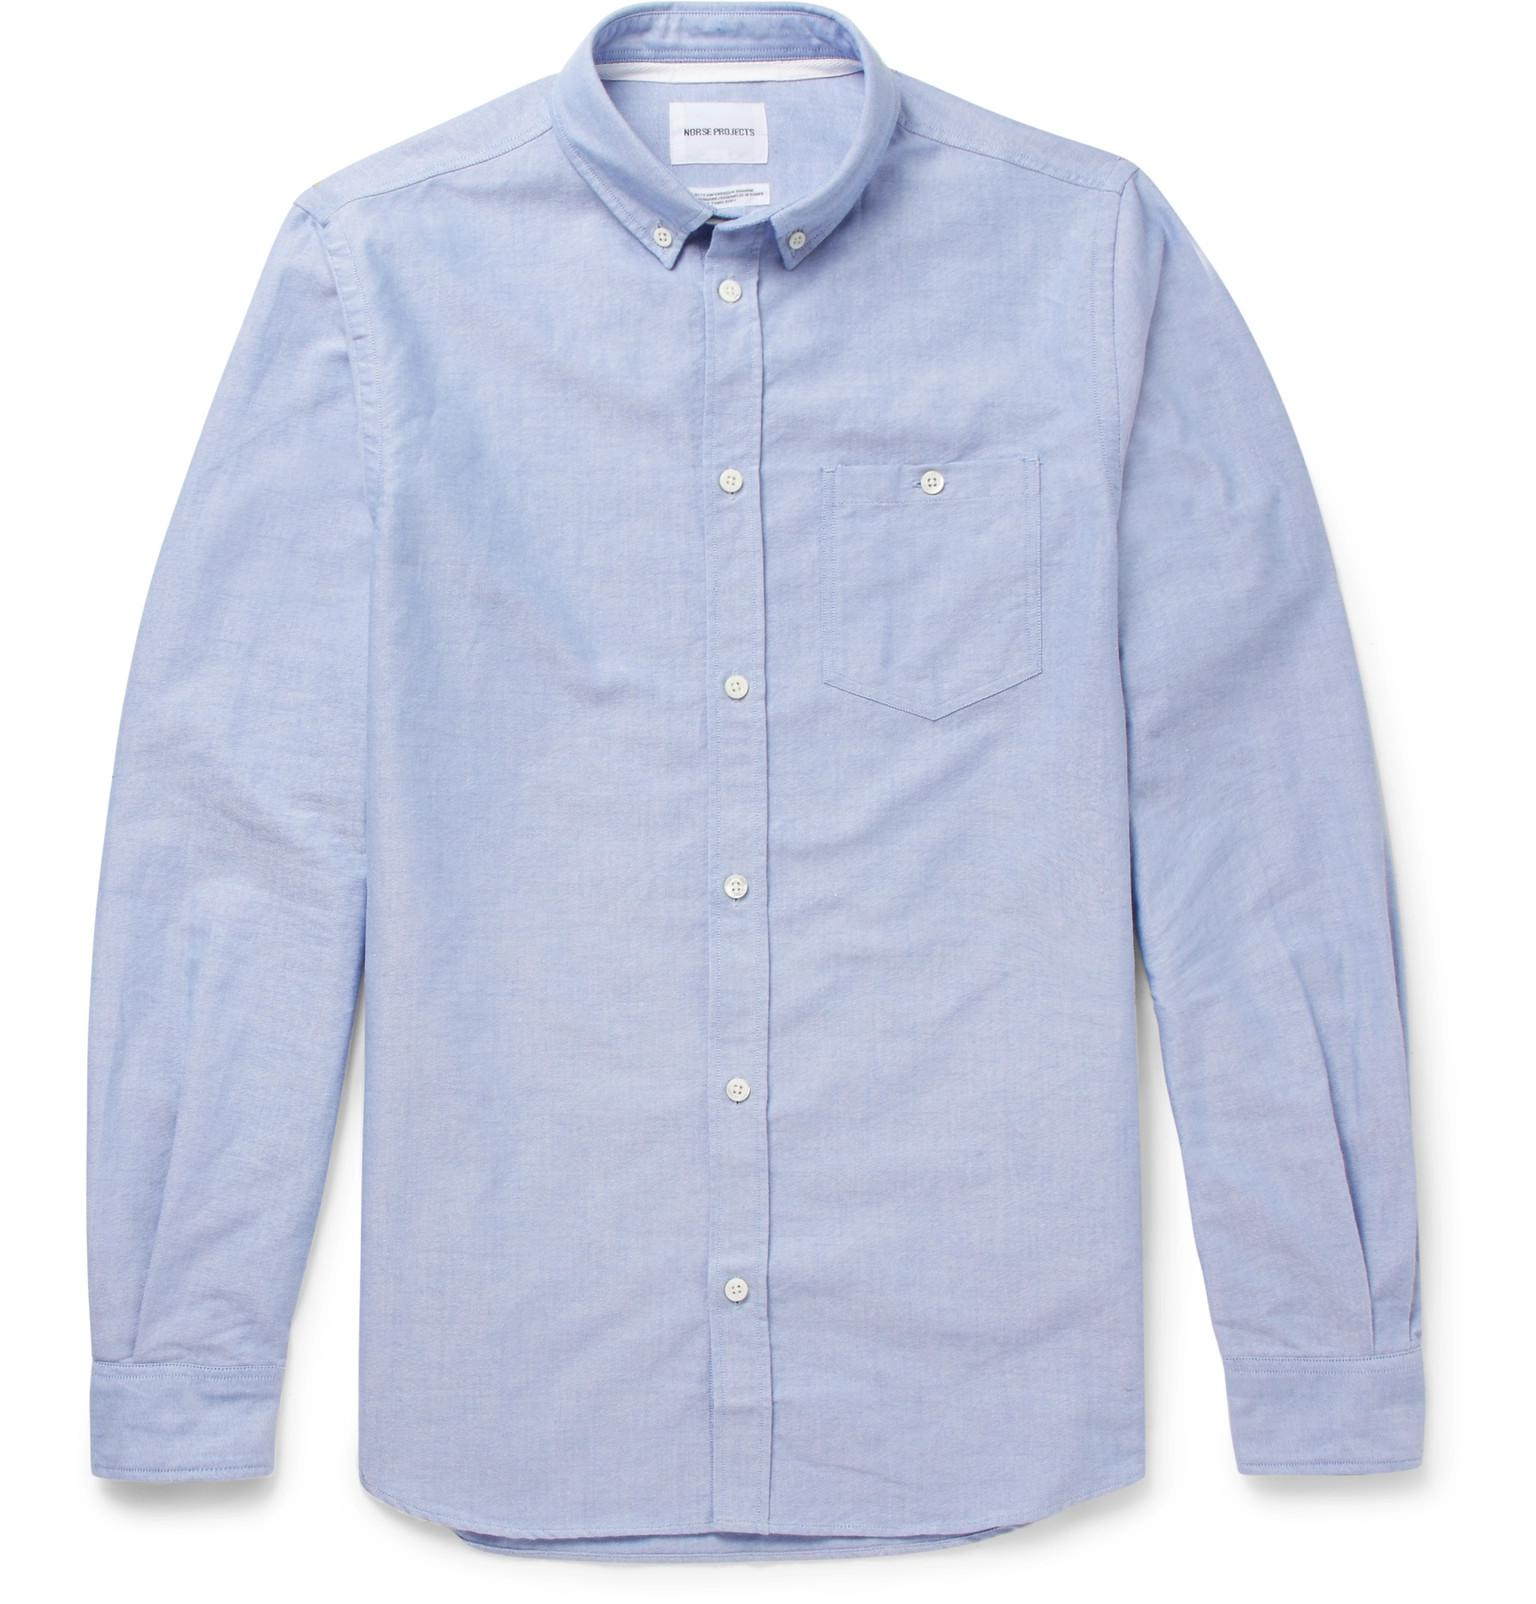 23f9ef432 Norse Projects - Blue Anton Button-down Collar Cotton Oxford Shirt for Men  - Lyst. View fullscreen